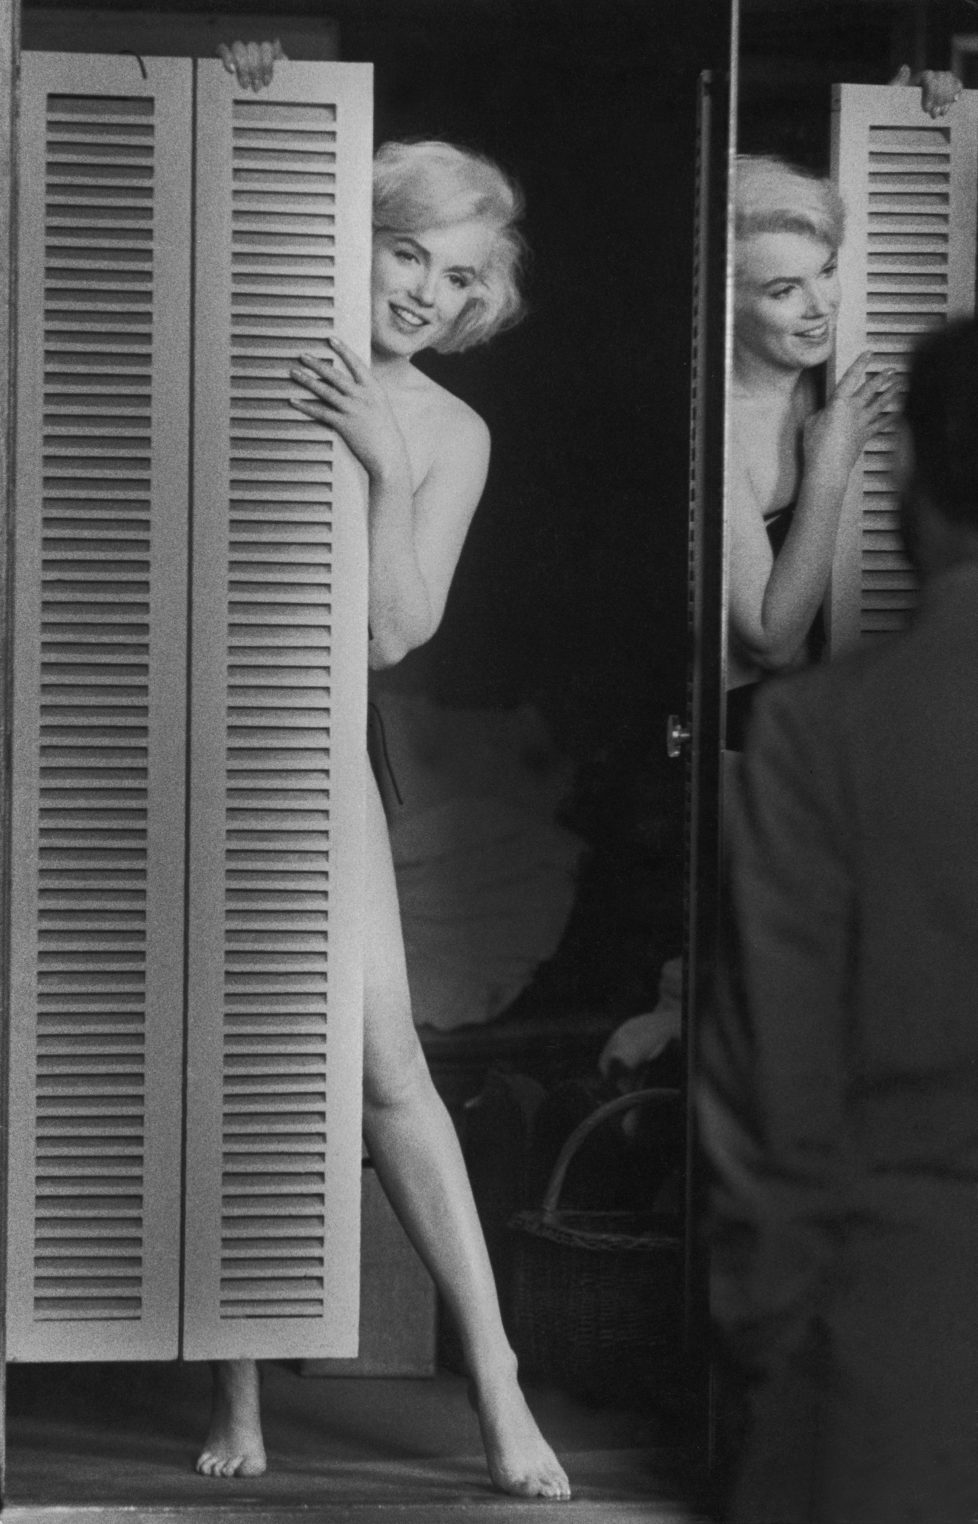 Actress Marilyn Monroe peering out at her husband Arthur Miller fr. behind door after putting on sexy bikini bathing suit she purchased, w. the price tag still on it, to see if he approves, at studio after work on movie Let's Make Love. (Photo by John Bryson/The LIFE Images Collection/Getty Images)